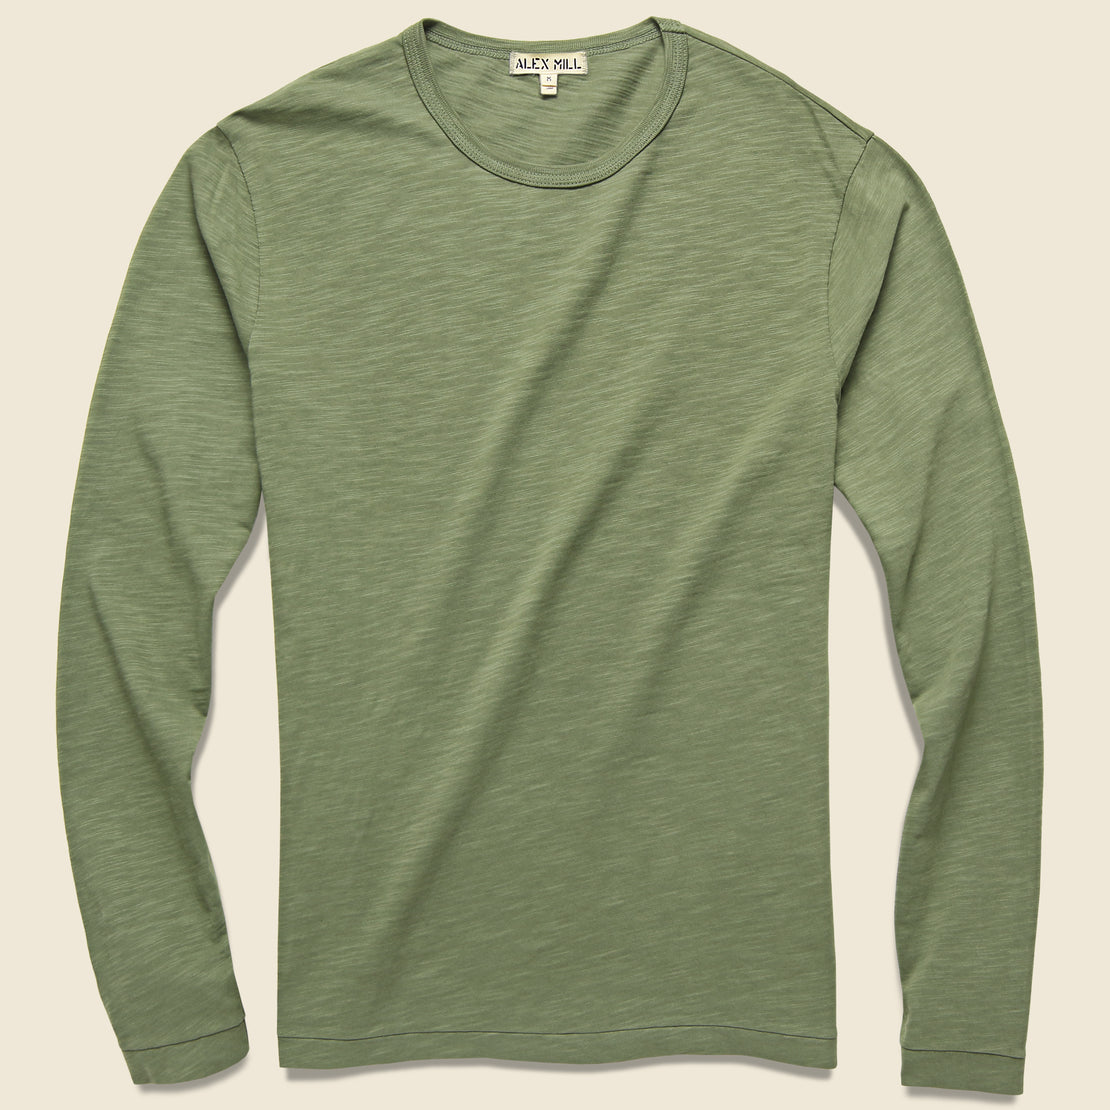 Alex Mill New Standard Slub Crew Tee - Military Green